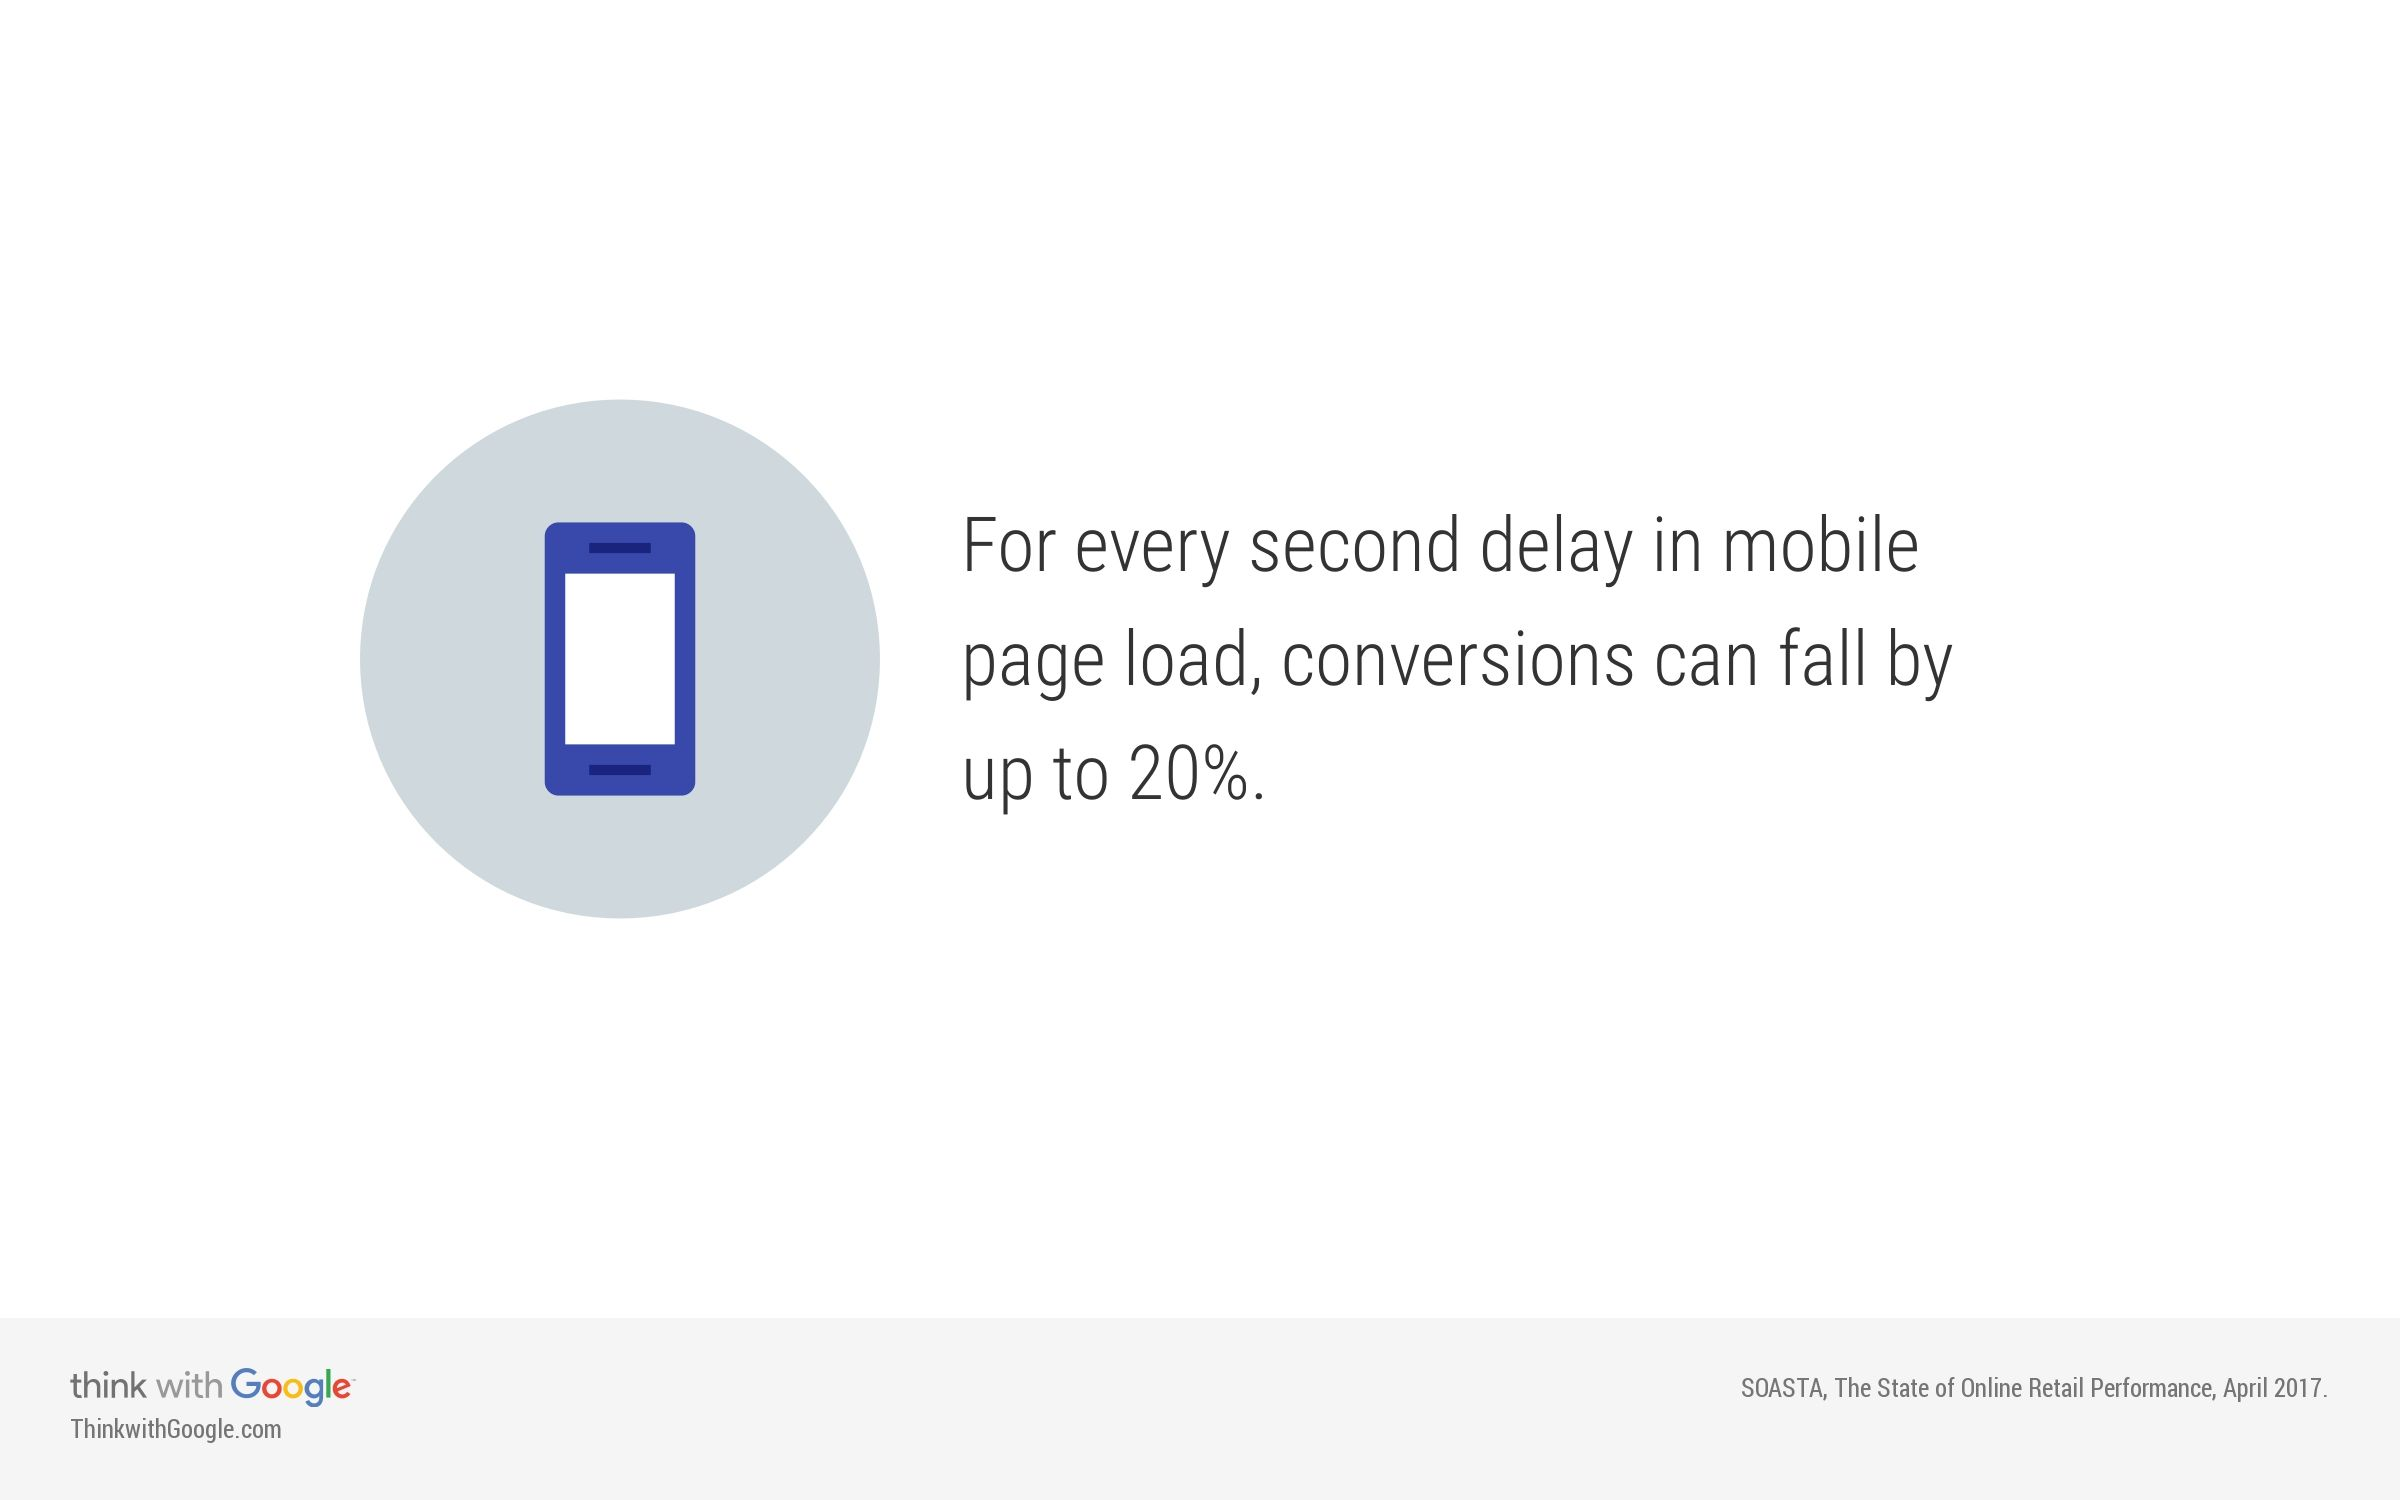 For every secomd delay in mobile page load, conversions can fall by up to 20%.